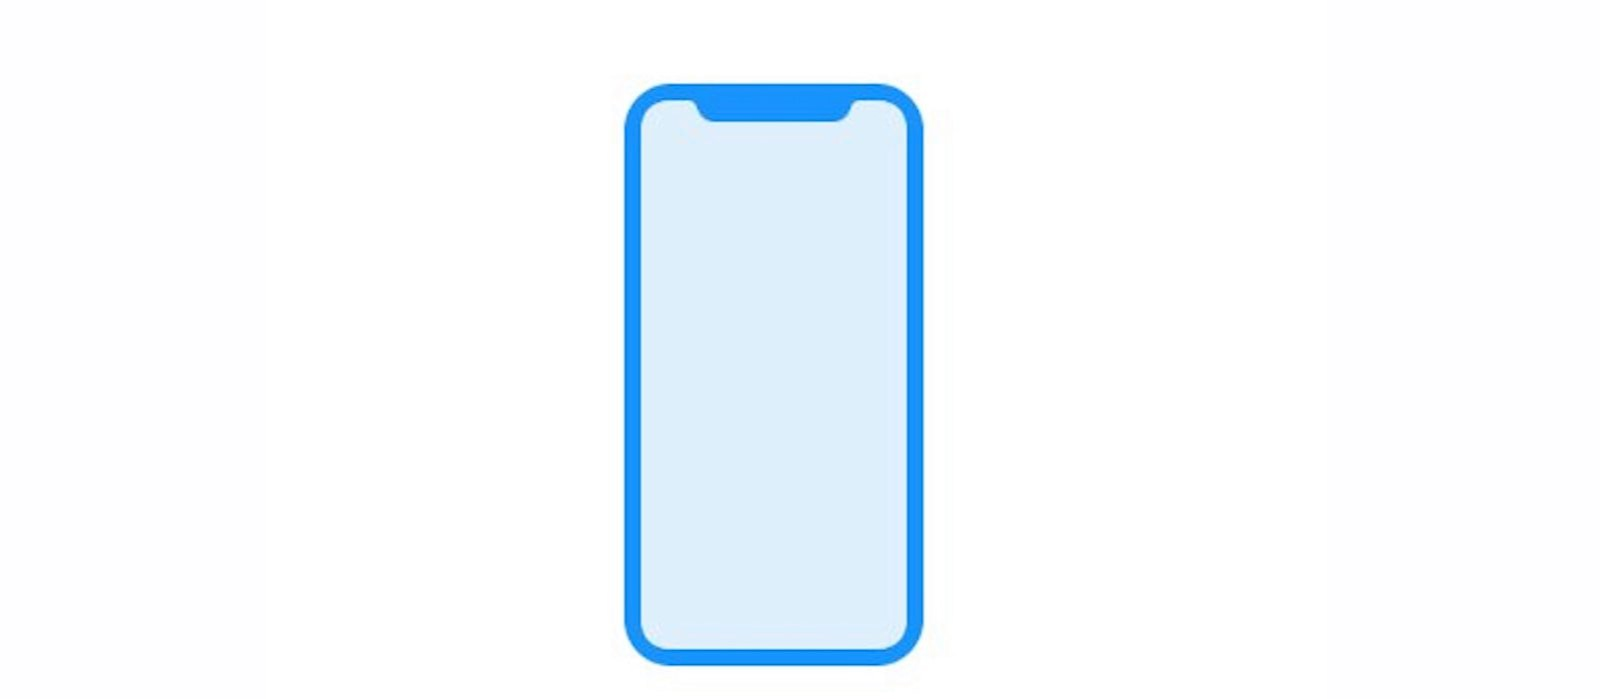 Developer Steve Troughton-Smith has discovered code that seemingly confirms the front design of iPhone 8 with face unlock support